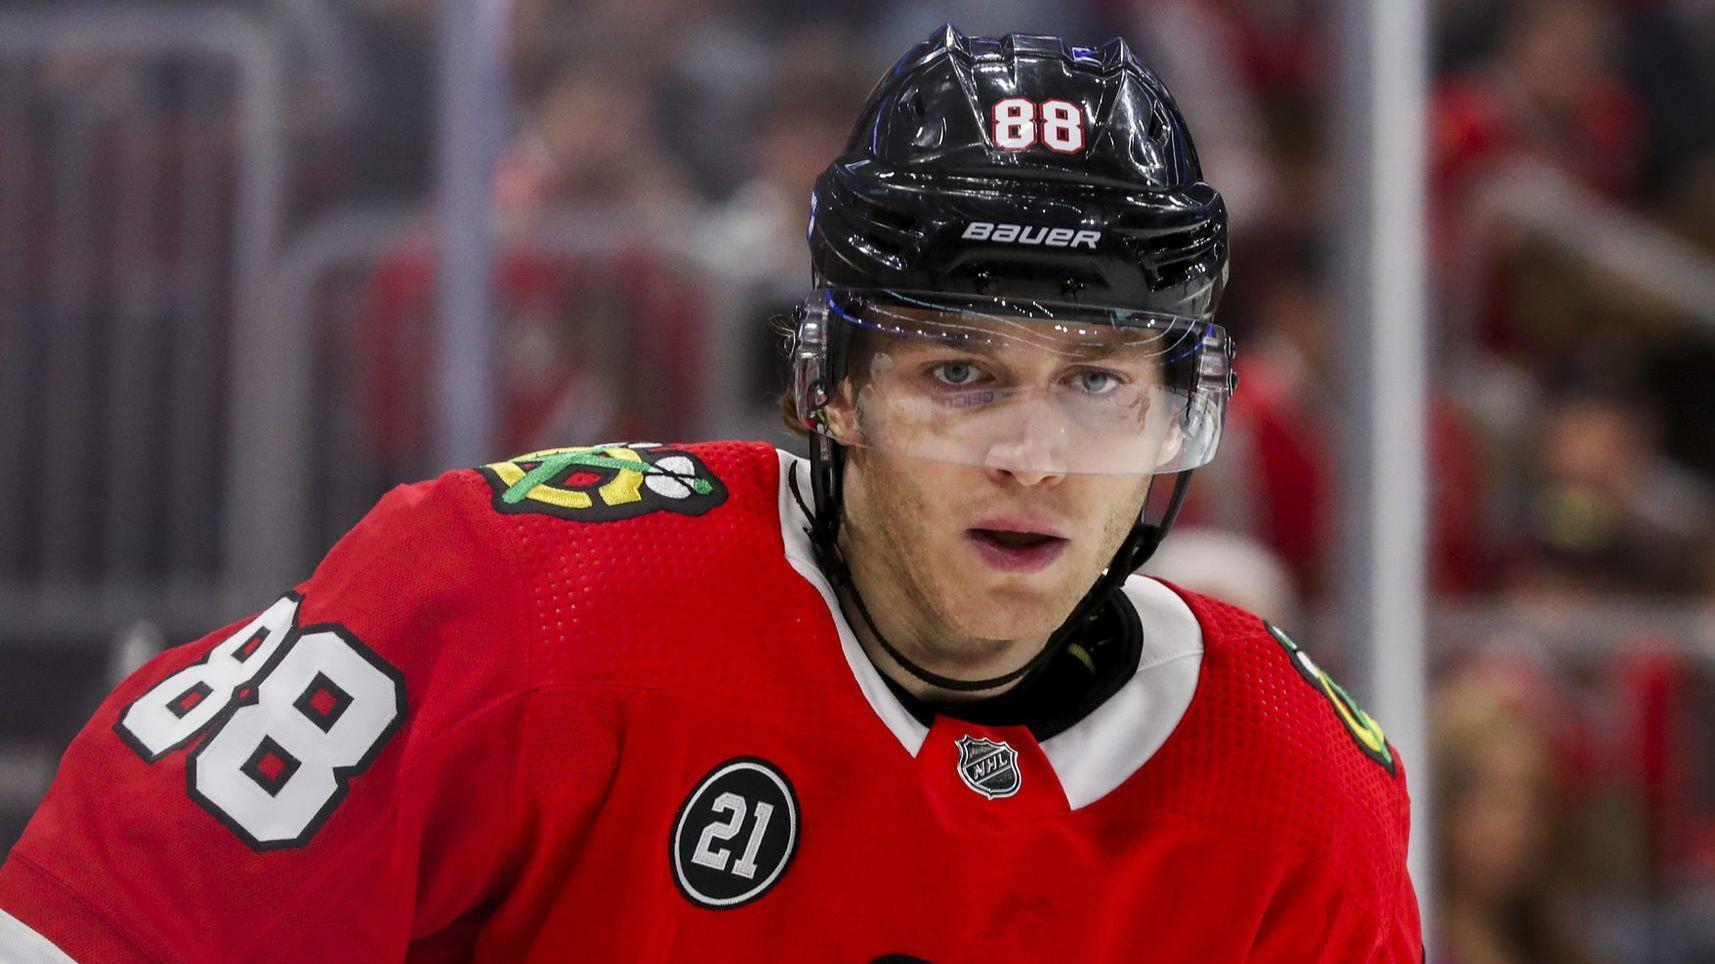 It S Official Blackhawks Will Play In Europe For The 1st